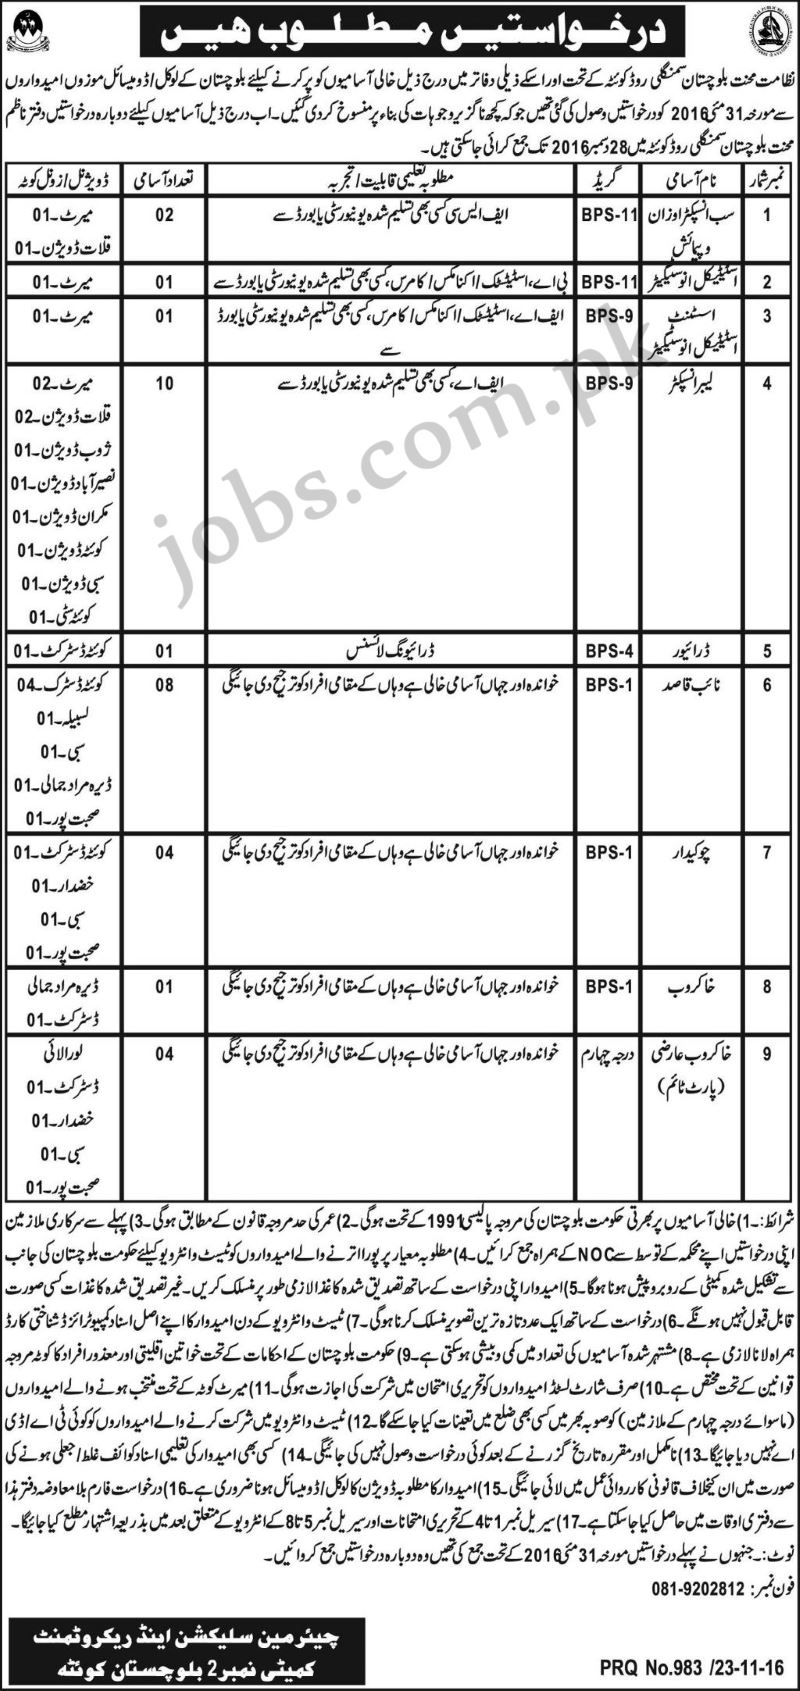 balochistan govt labor dept jobs 2016 available for 32